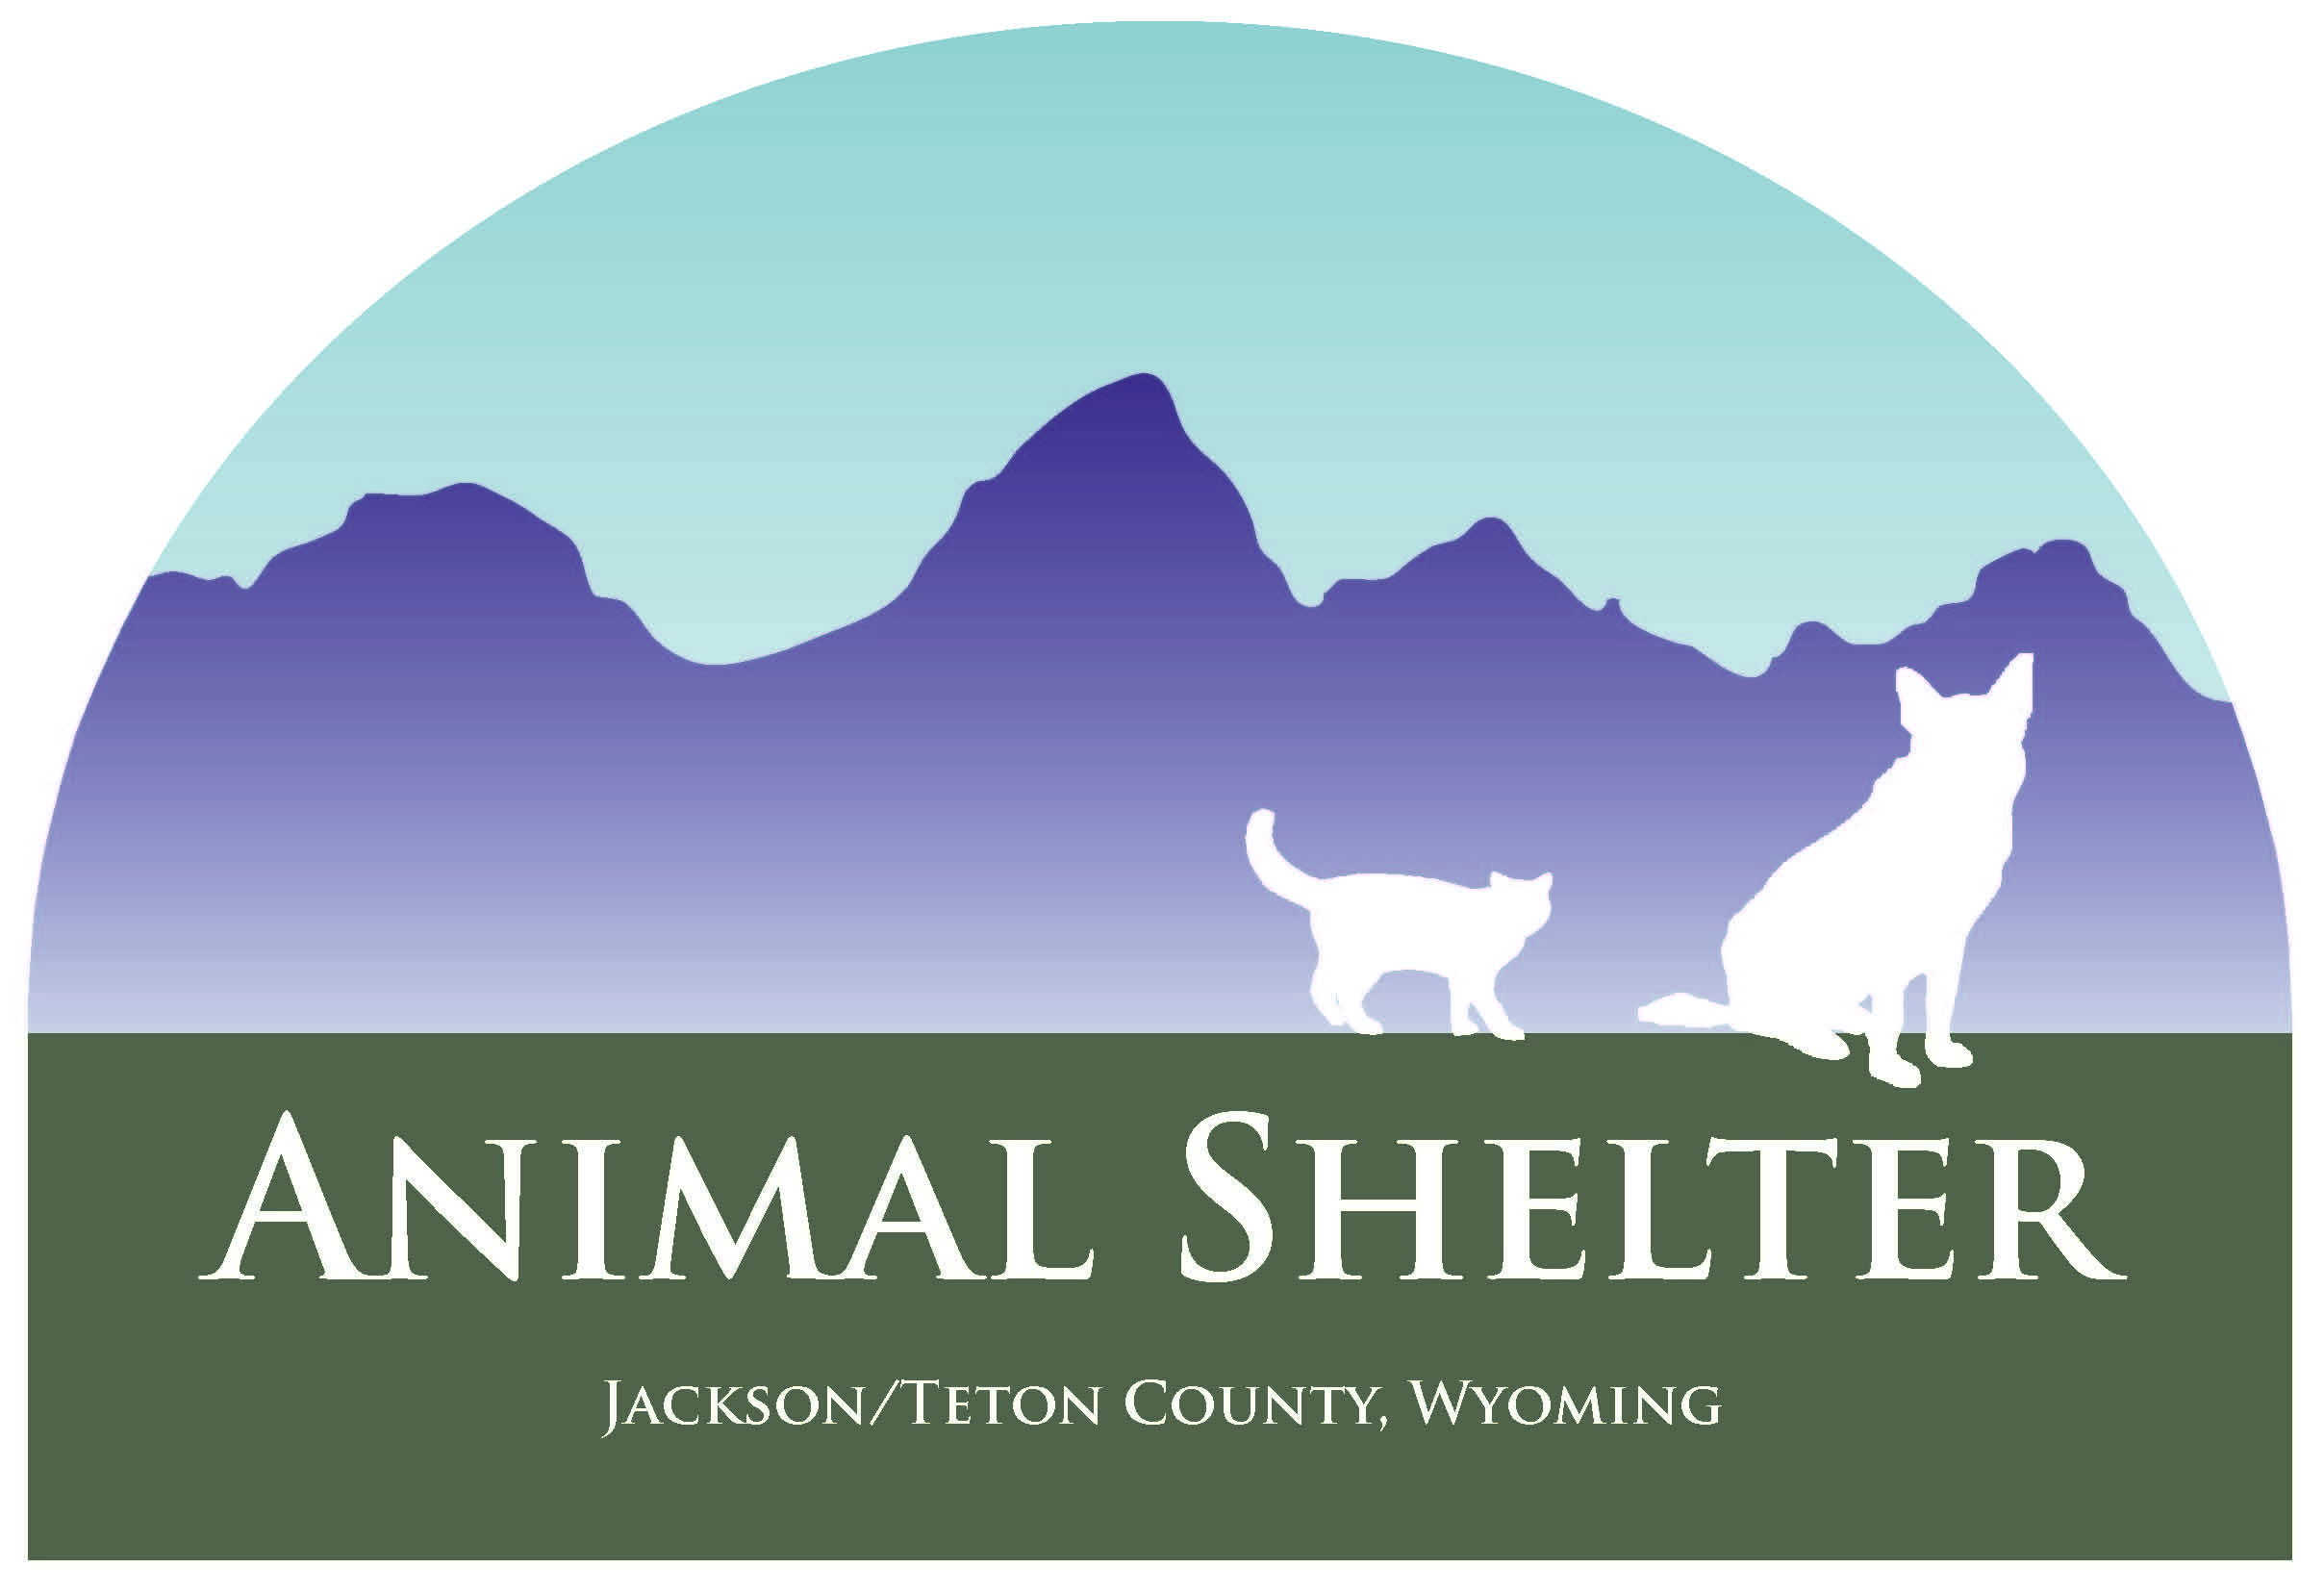 Jackson/Teton County Animal Shelter